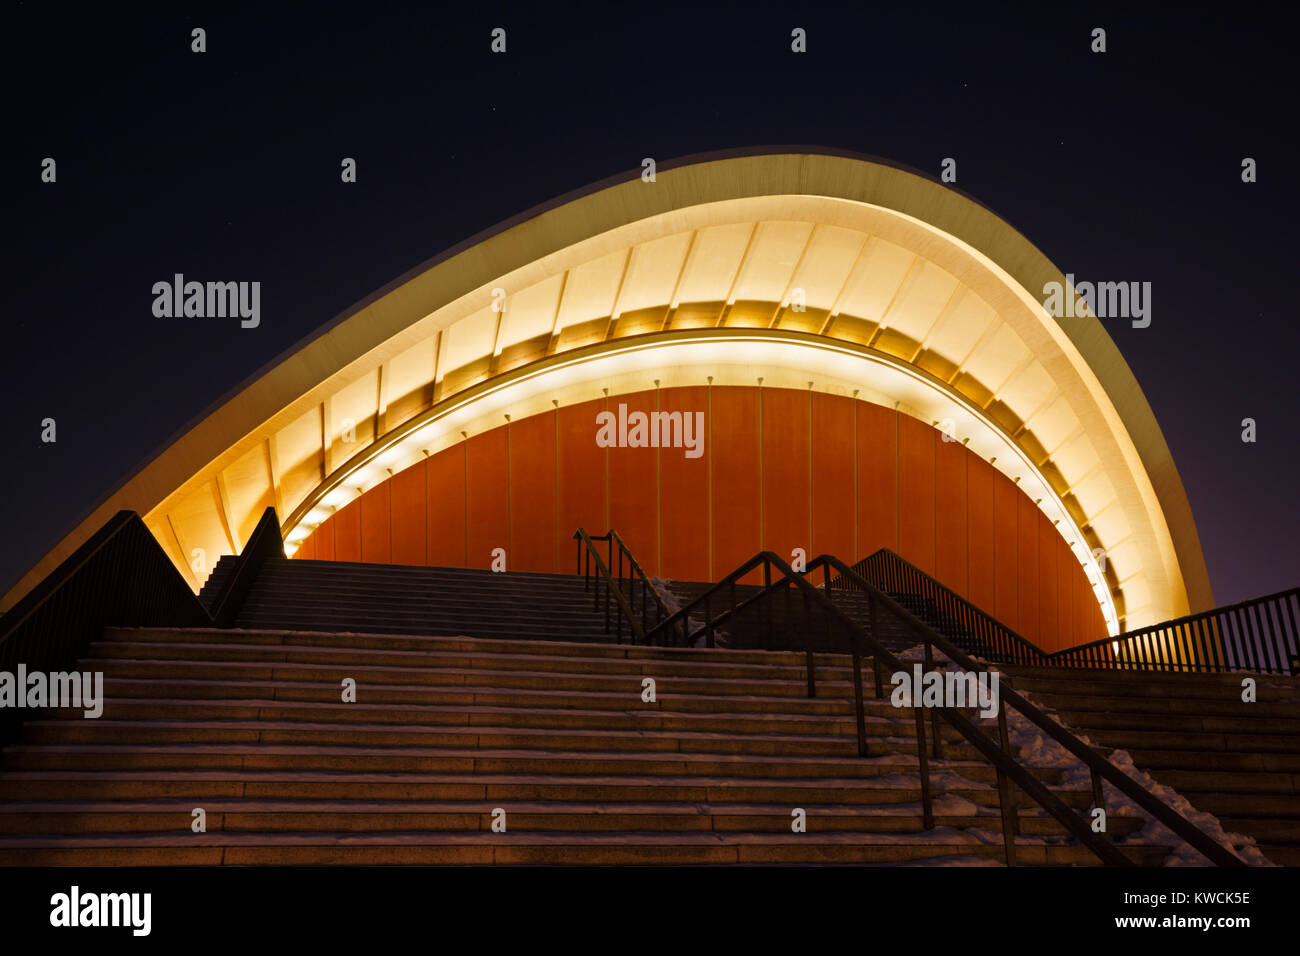 The House of World Cultures, also known as 'Schwangere Auster' (Pregnant Oyster) in Berlin at night. - Stock Image